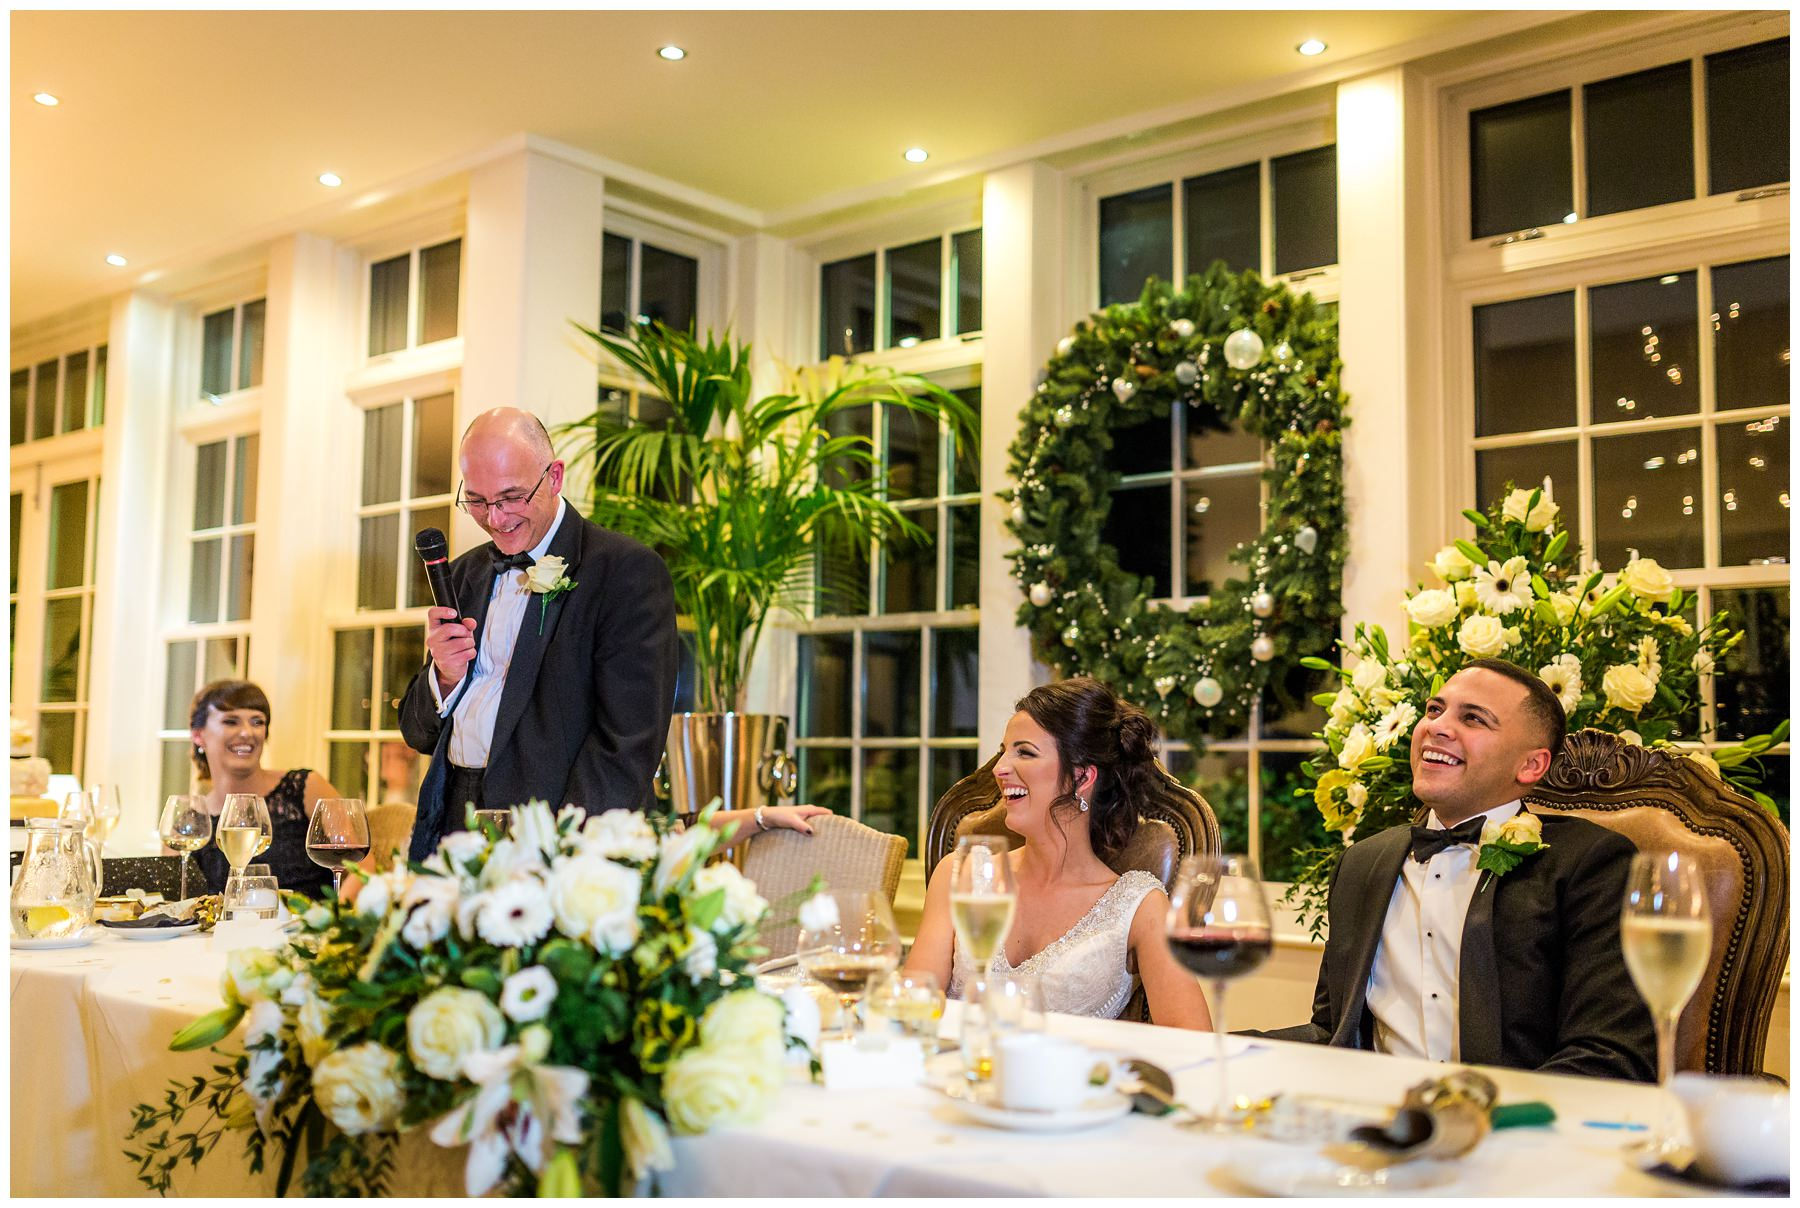 dad giving his wedding speech at the top table